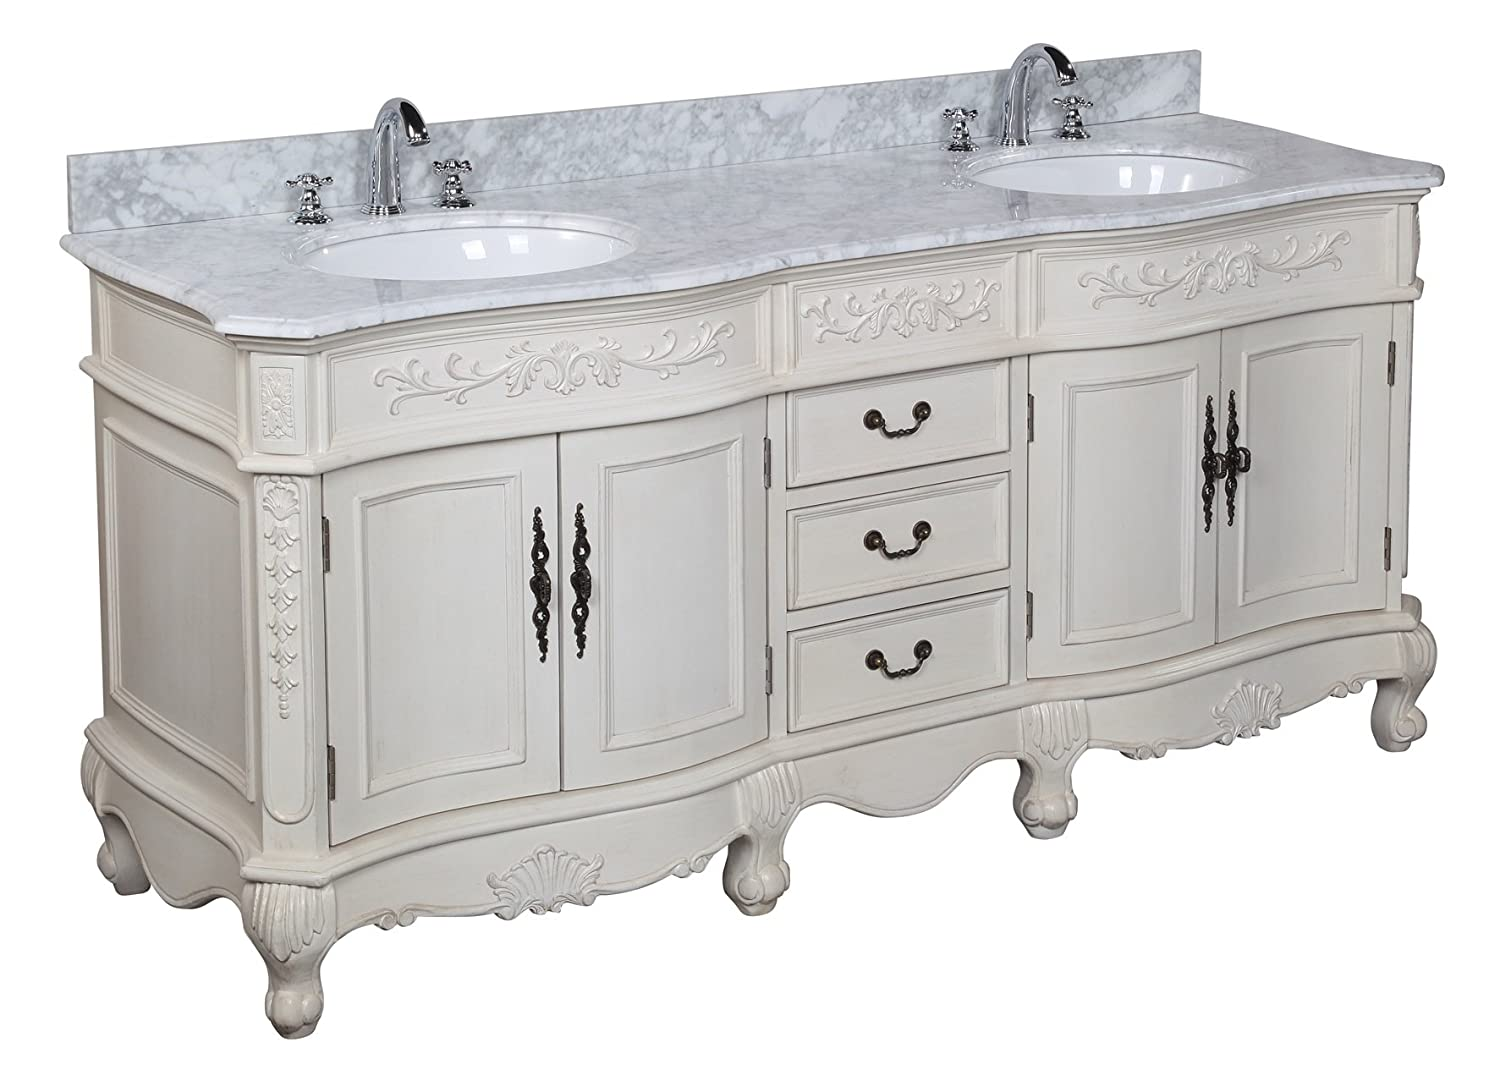 Versailles 72-inch Bathroom Vanity Carrara Antique White Includes Antique Style Cabinet with Soft Close Drawers, Carrara Marble Countertop, and Two Ceramic Sinks